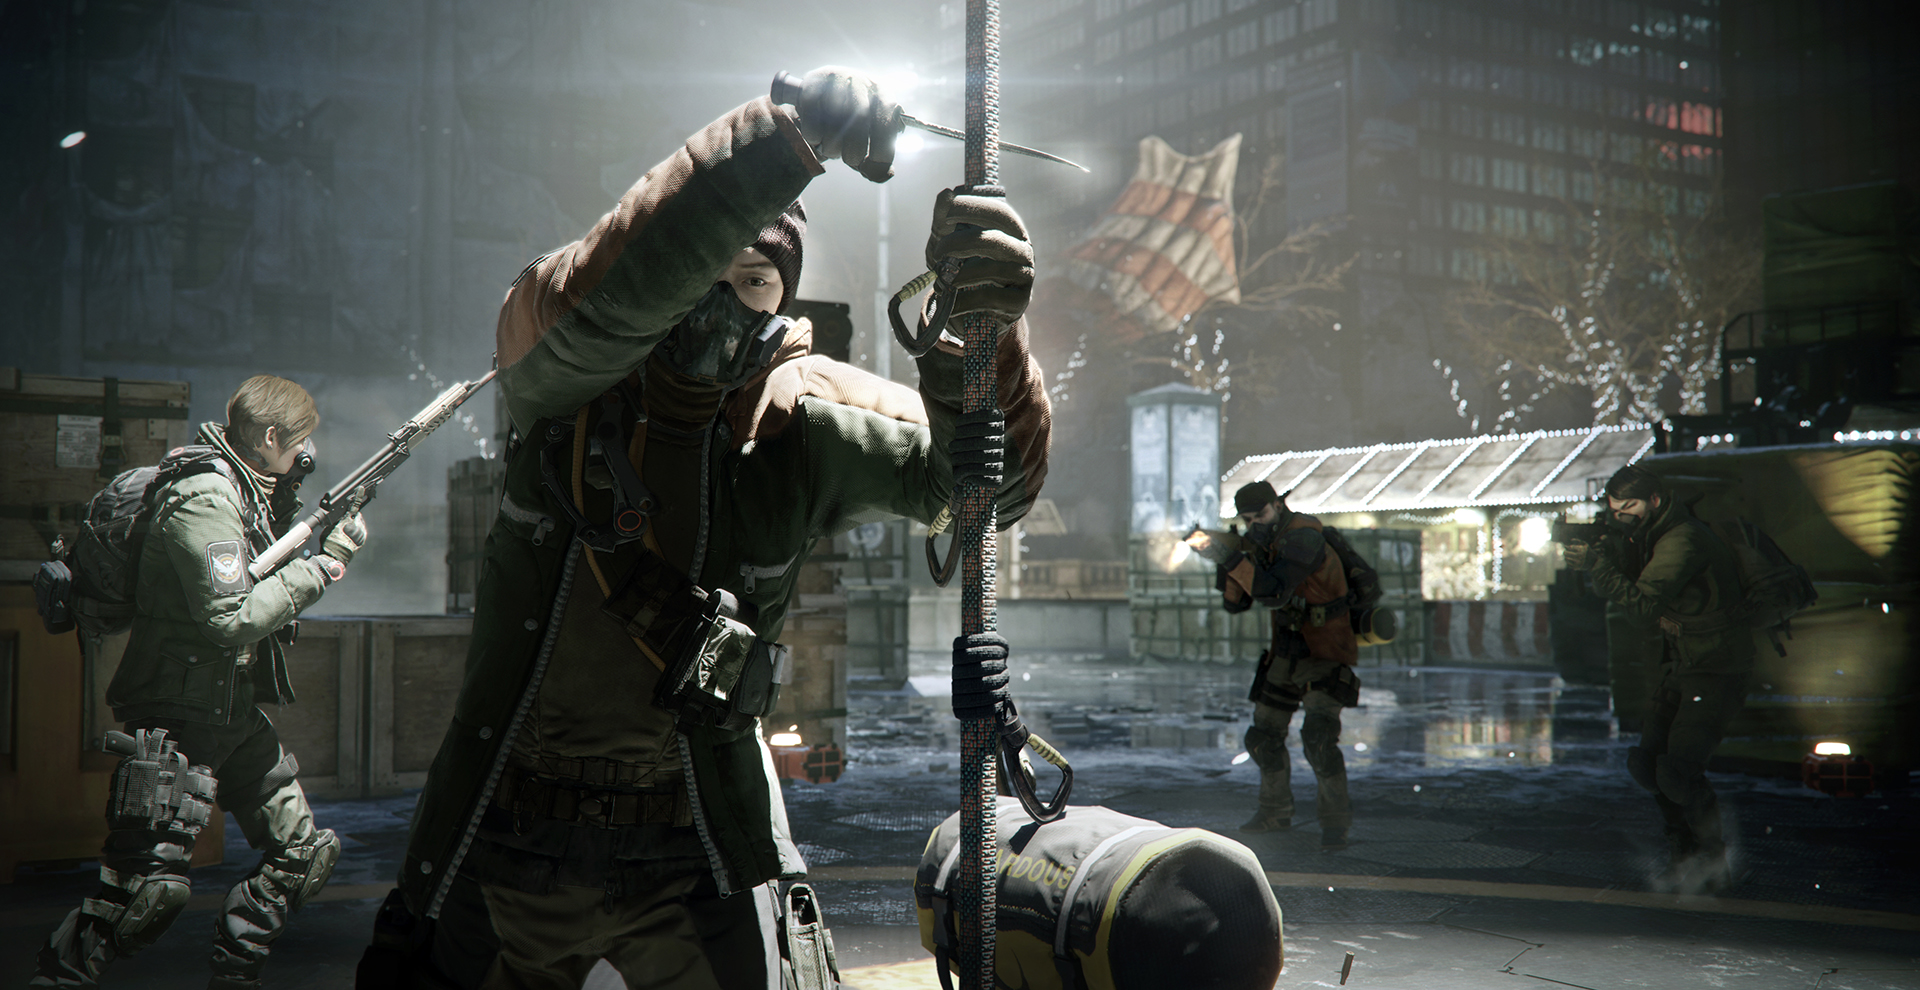 It's official, The Division will be made into a movie